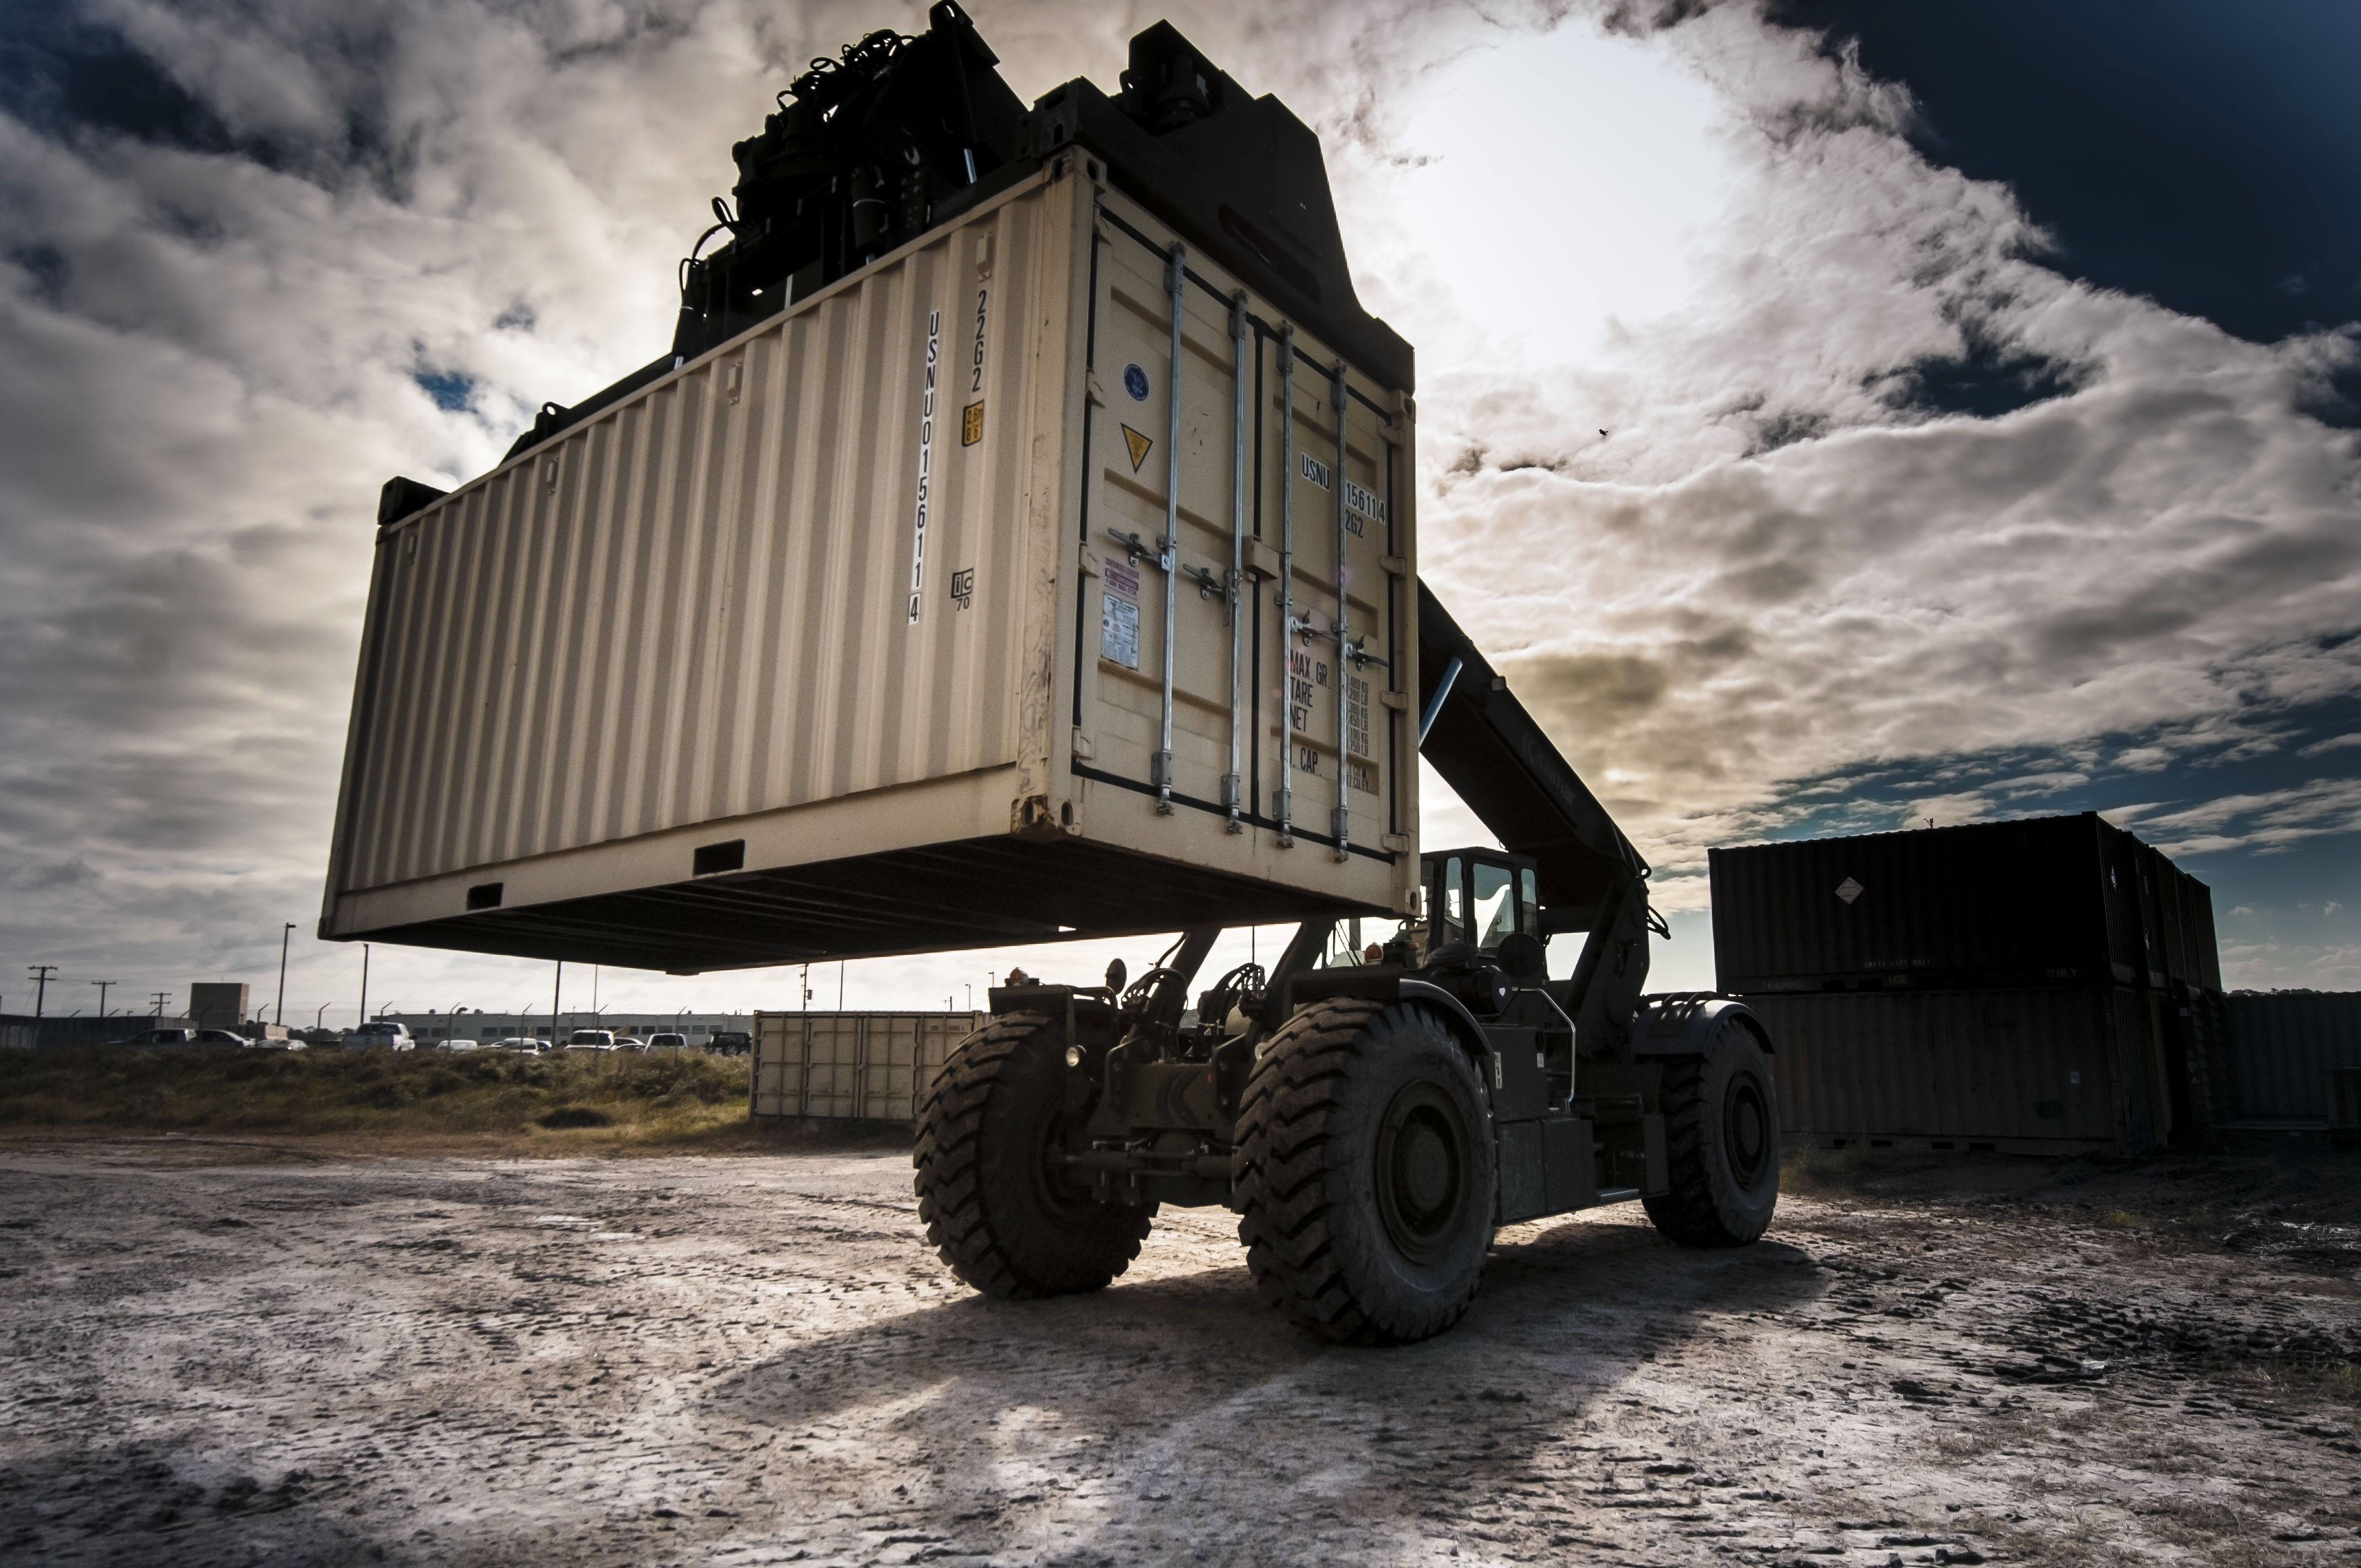 Lifting the Trailer, Carrier, Container, Heavy, Lift, HQ Photo